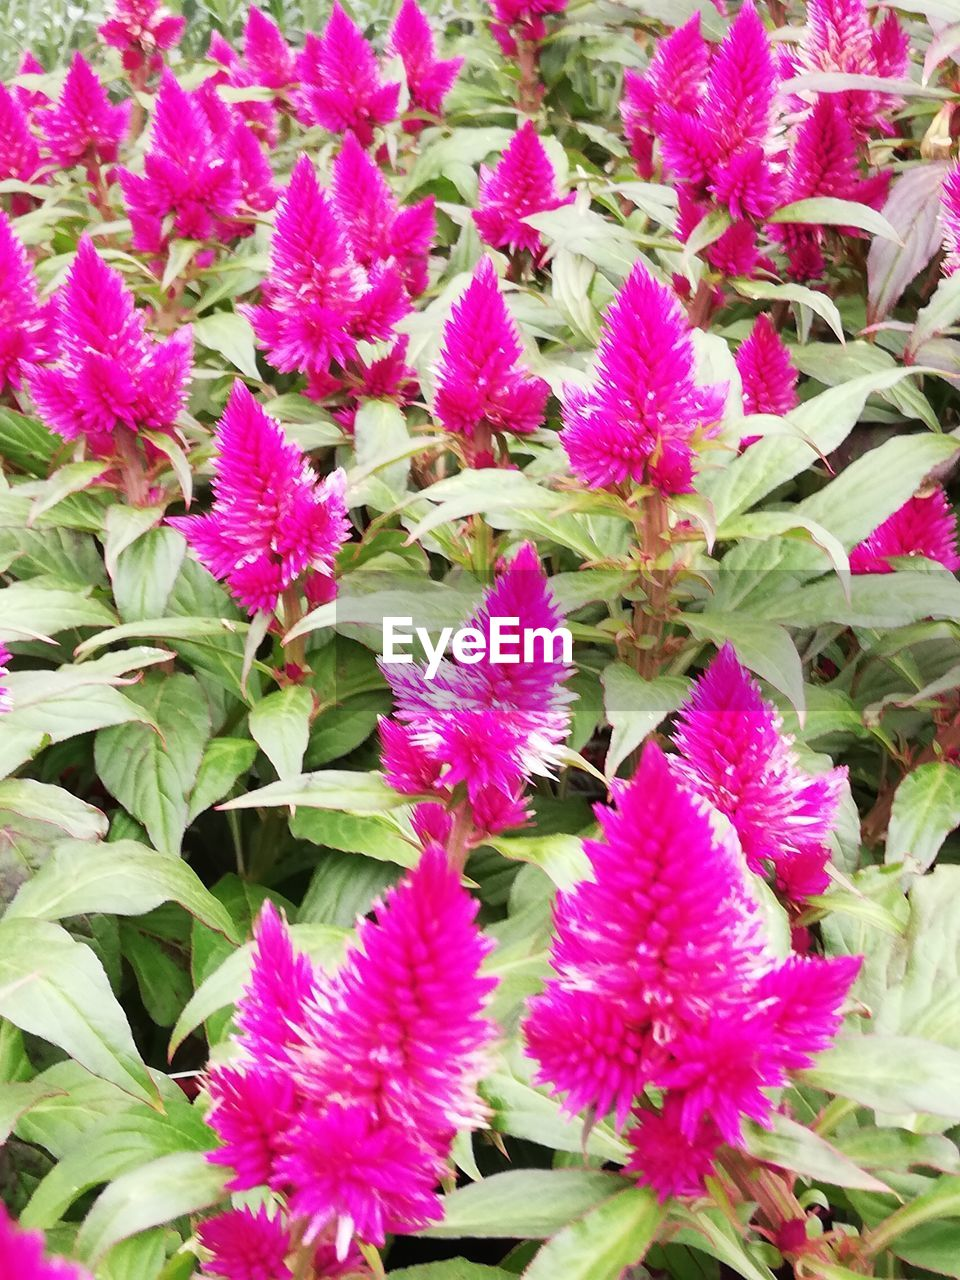 plant, flowering plant, flower, beauty in nature, growth, vulnerability, fragility, freshness, pink color, close-up, petal, flower head, leaf, nature, plant part, day, inflorescence, no people, high angle view, outdoors, purple, flowerbed